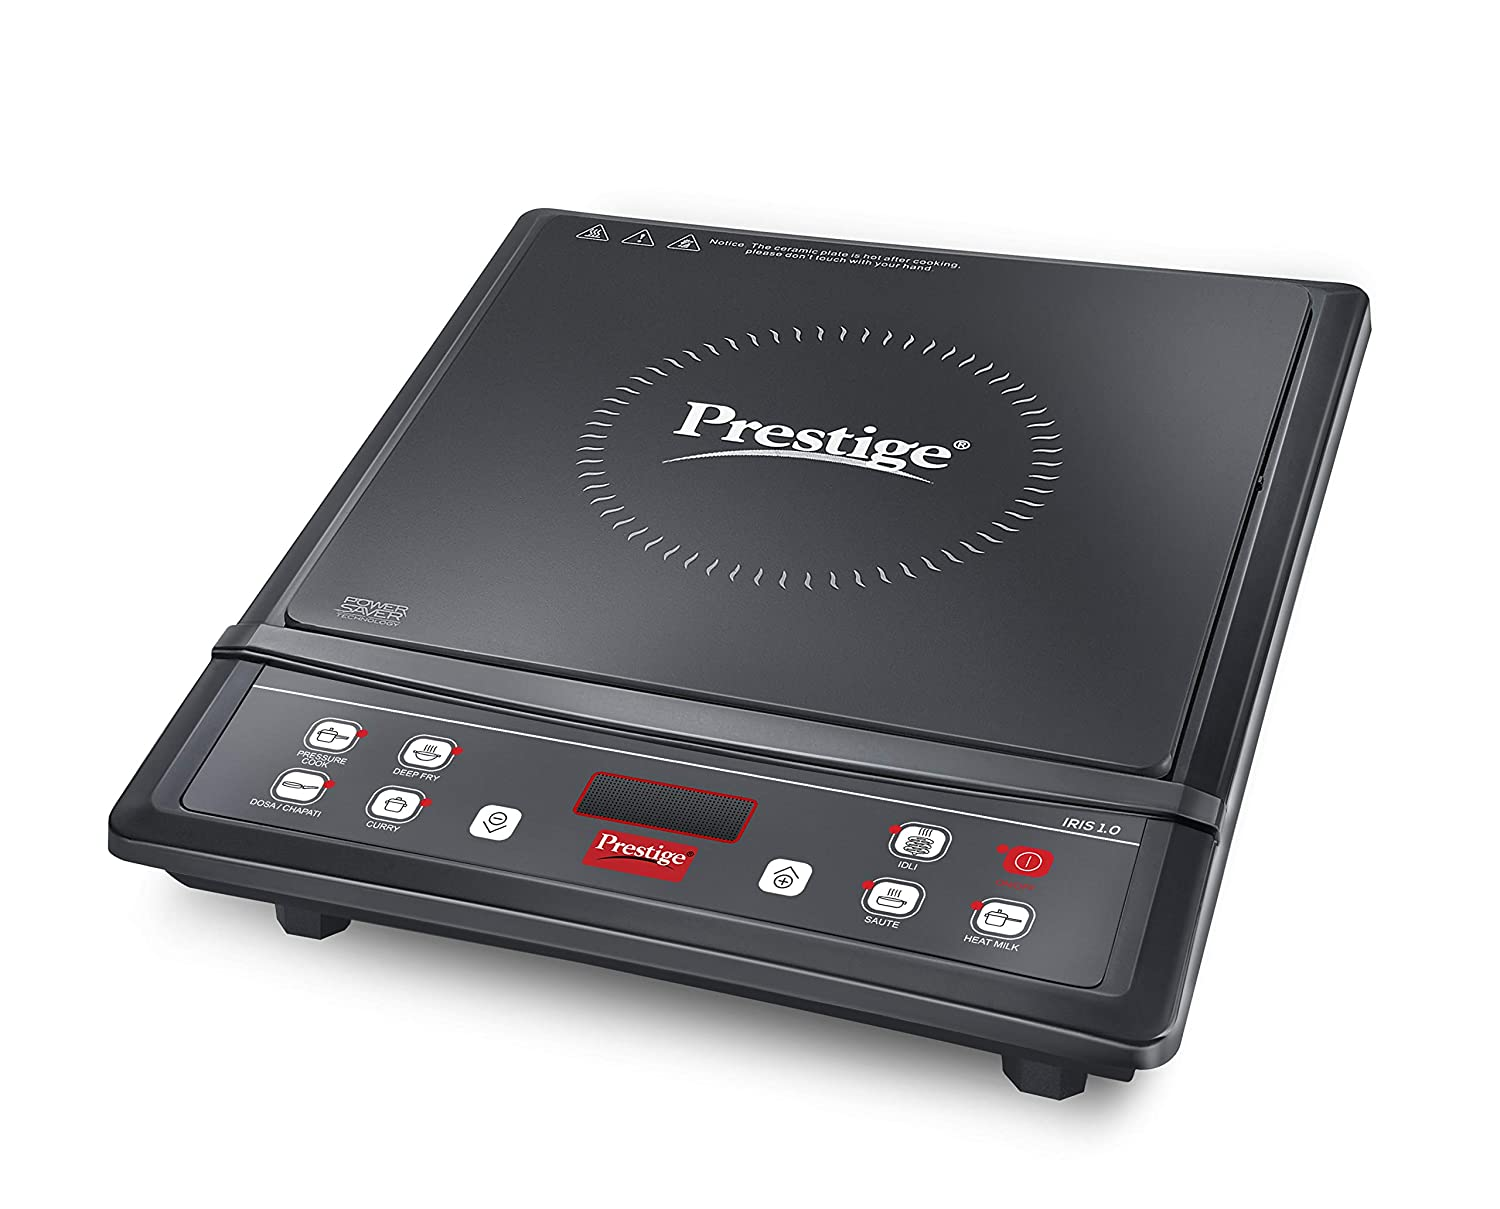 Prestige Iris 1.0 1200 Watt Induction Cooktop